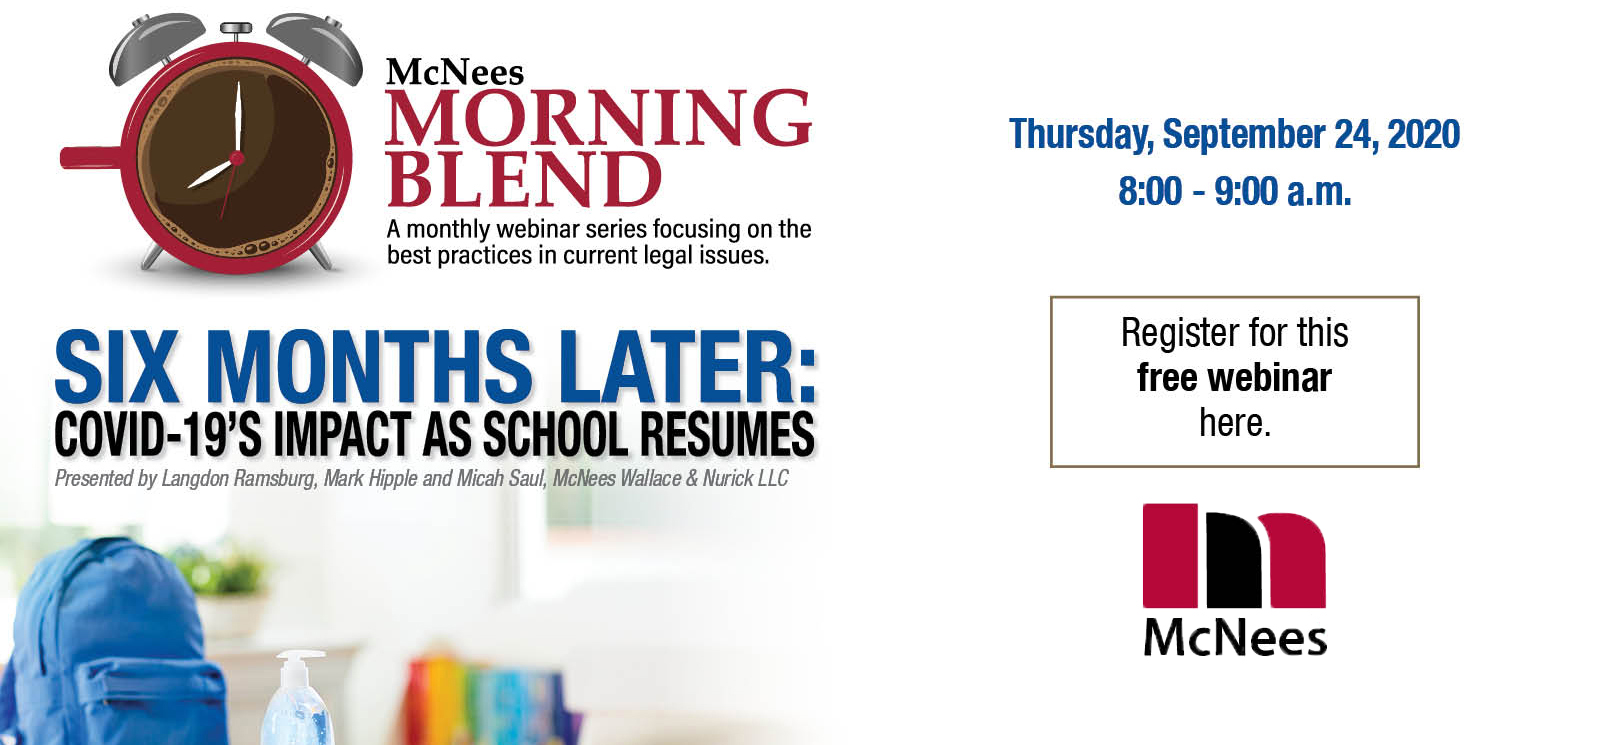 McNees Morning Blend: COVID's Impact As School Resumes